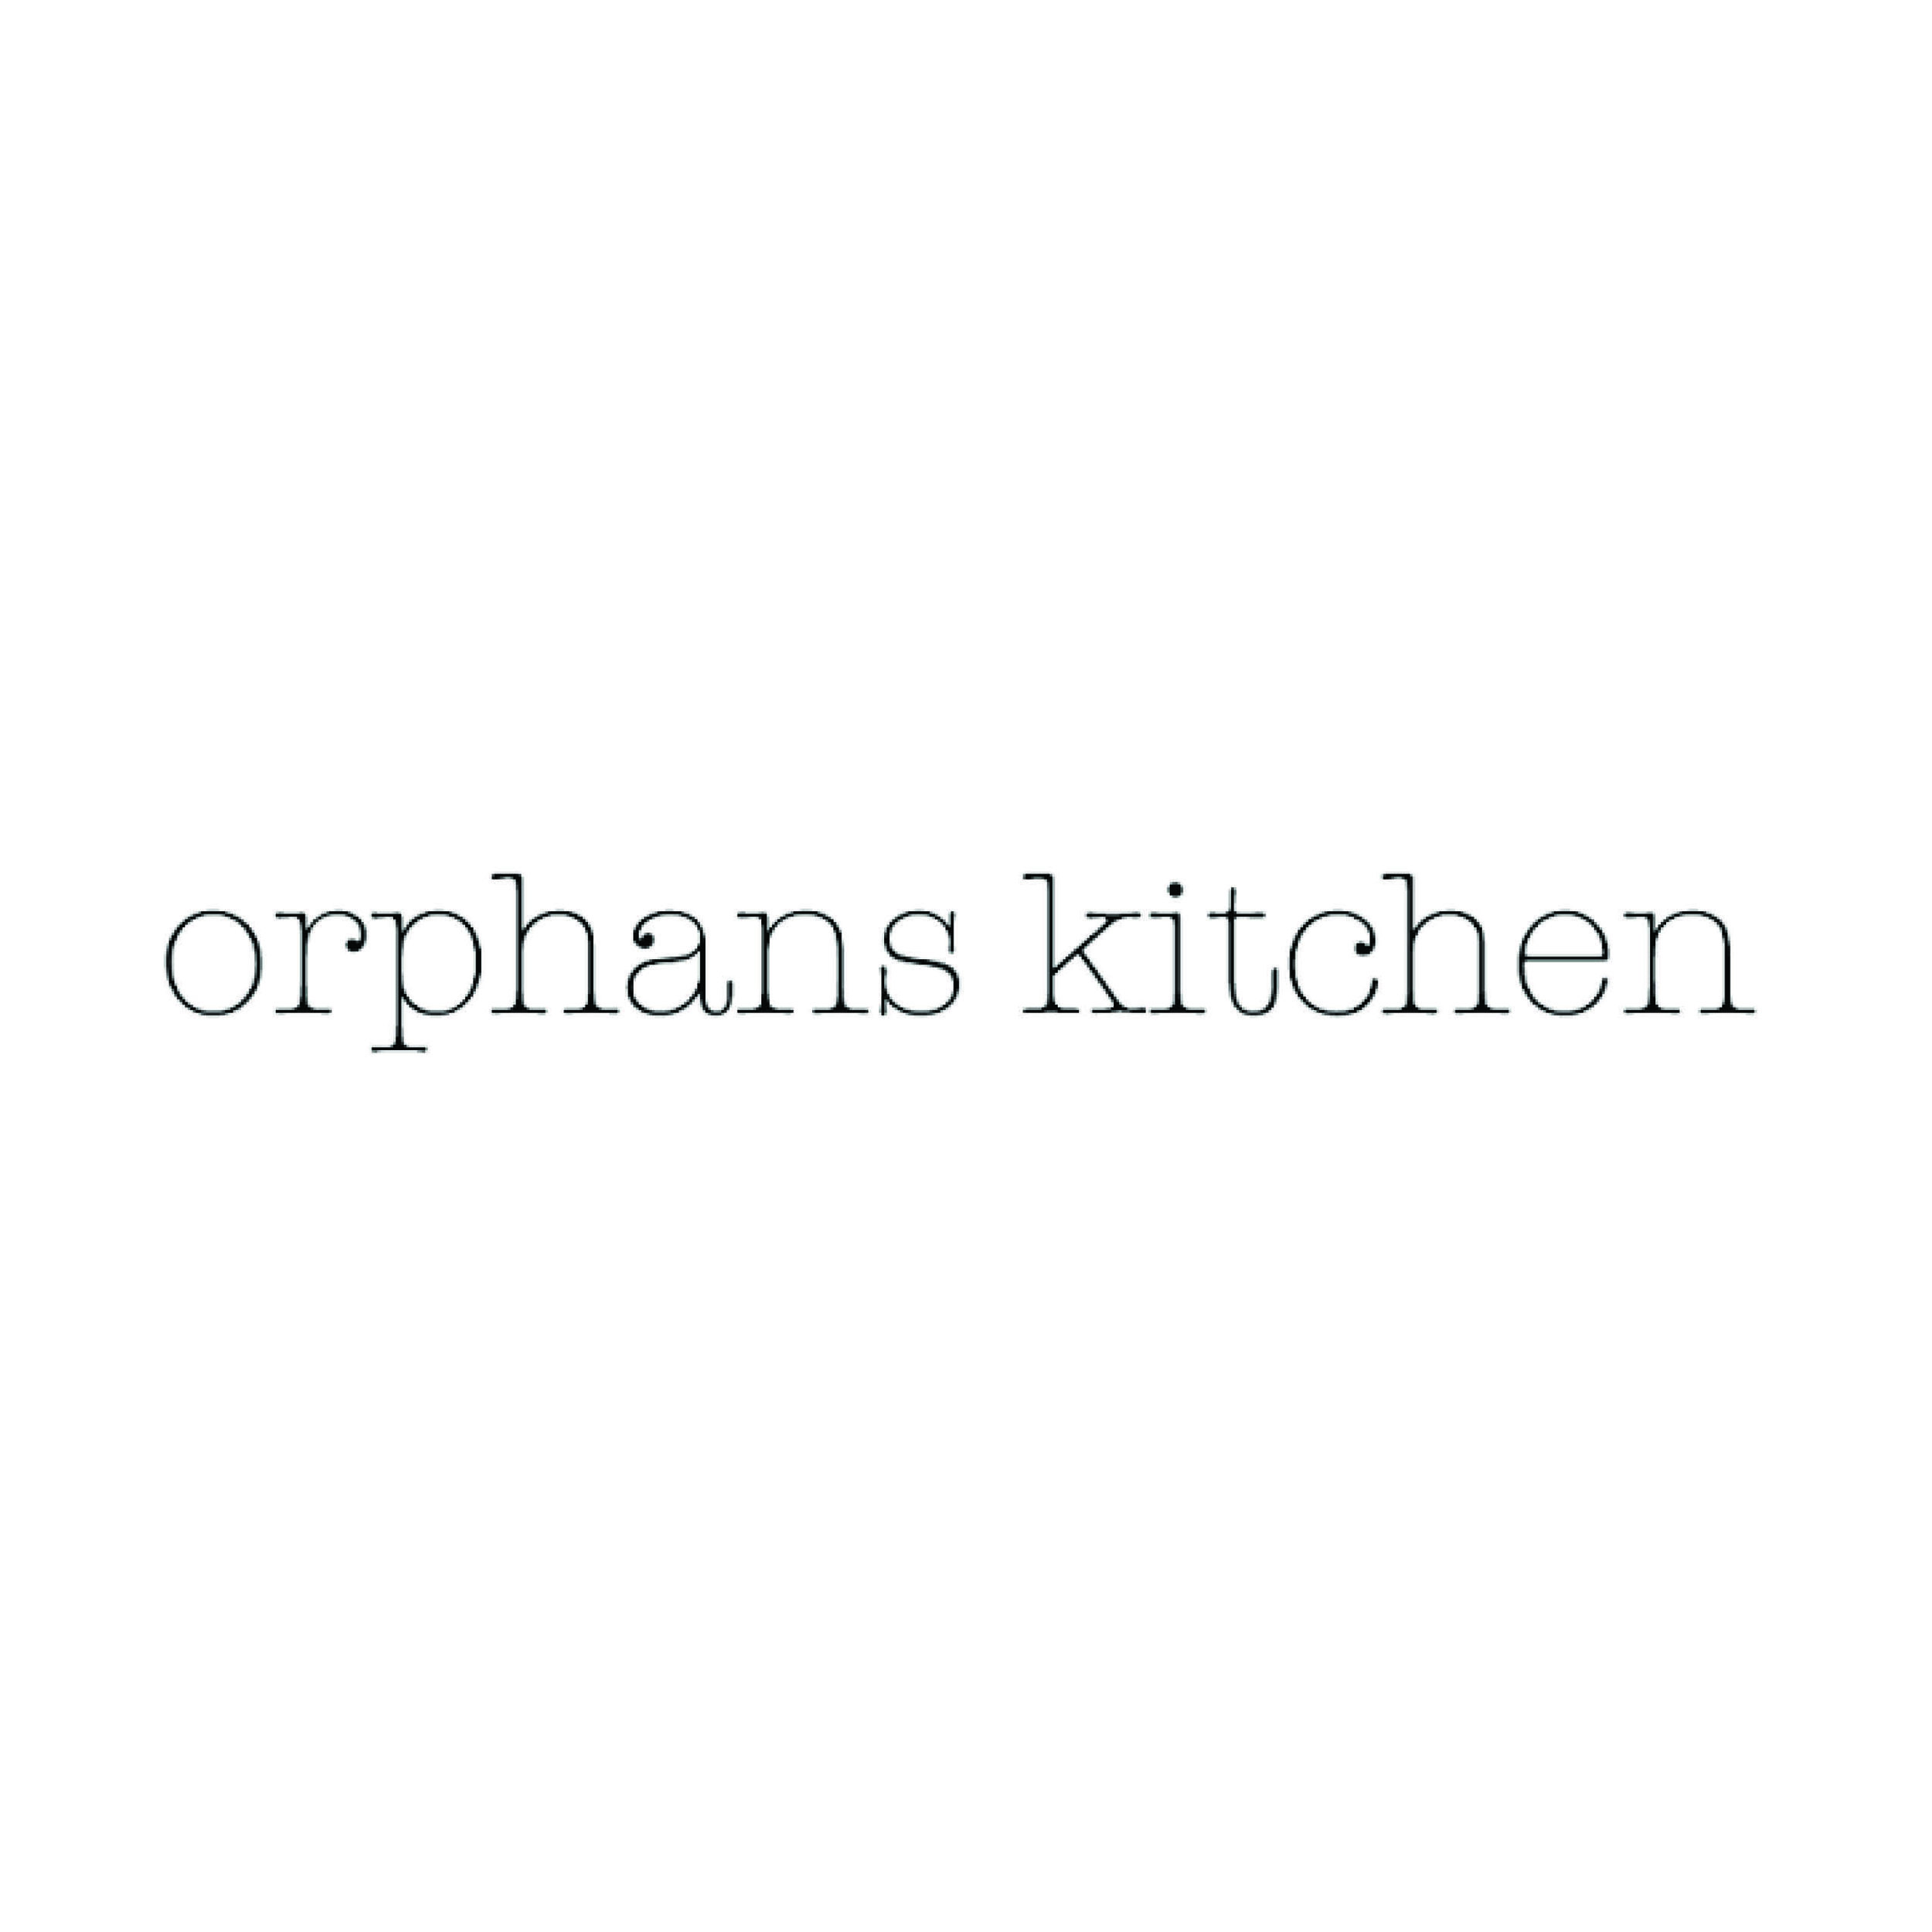 Orphans kitchen